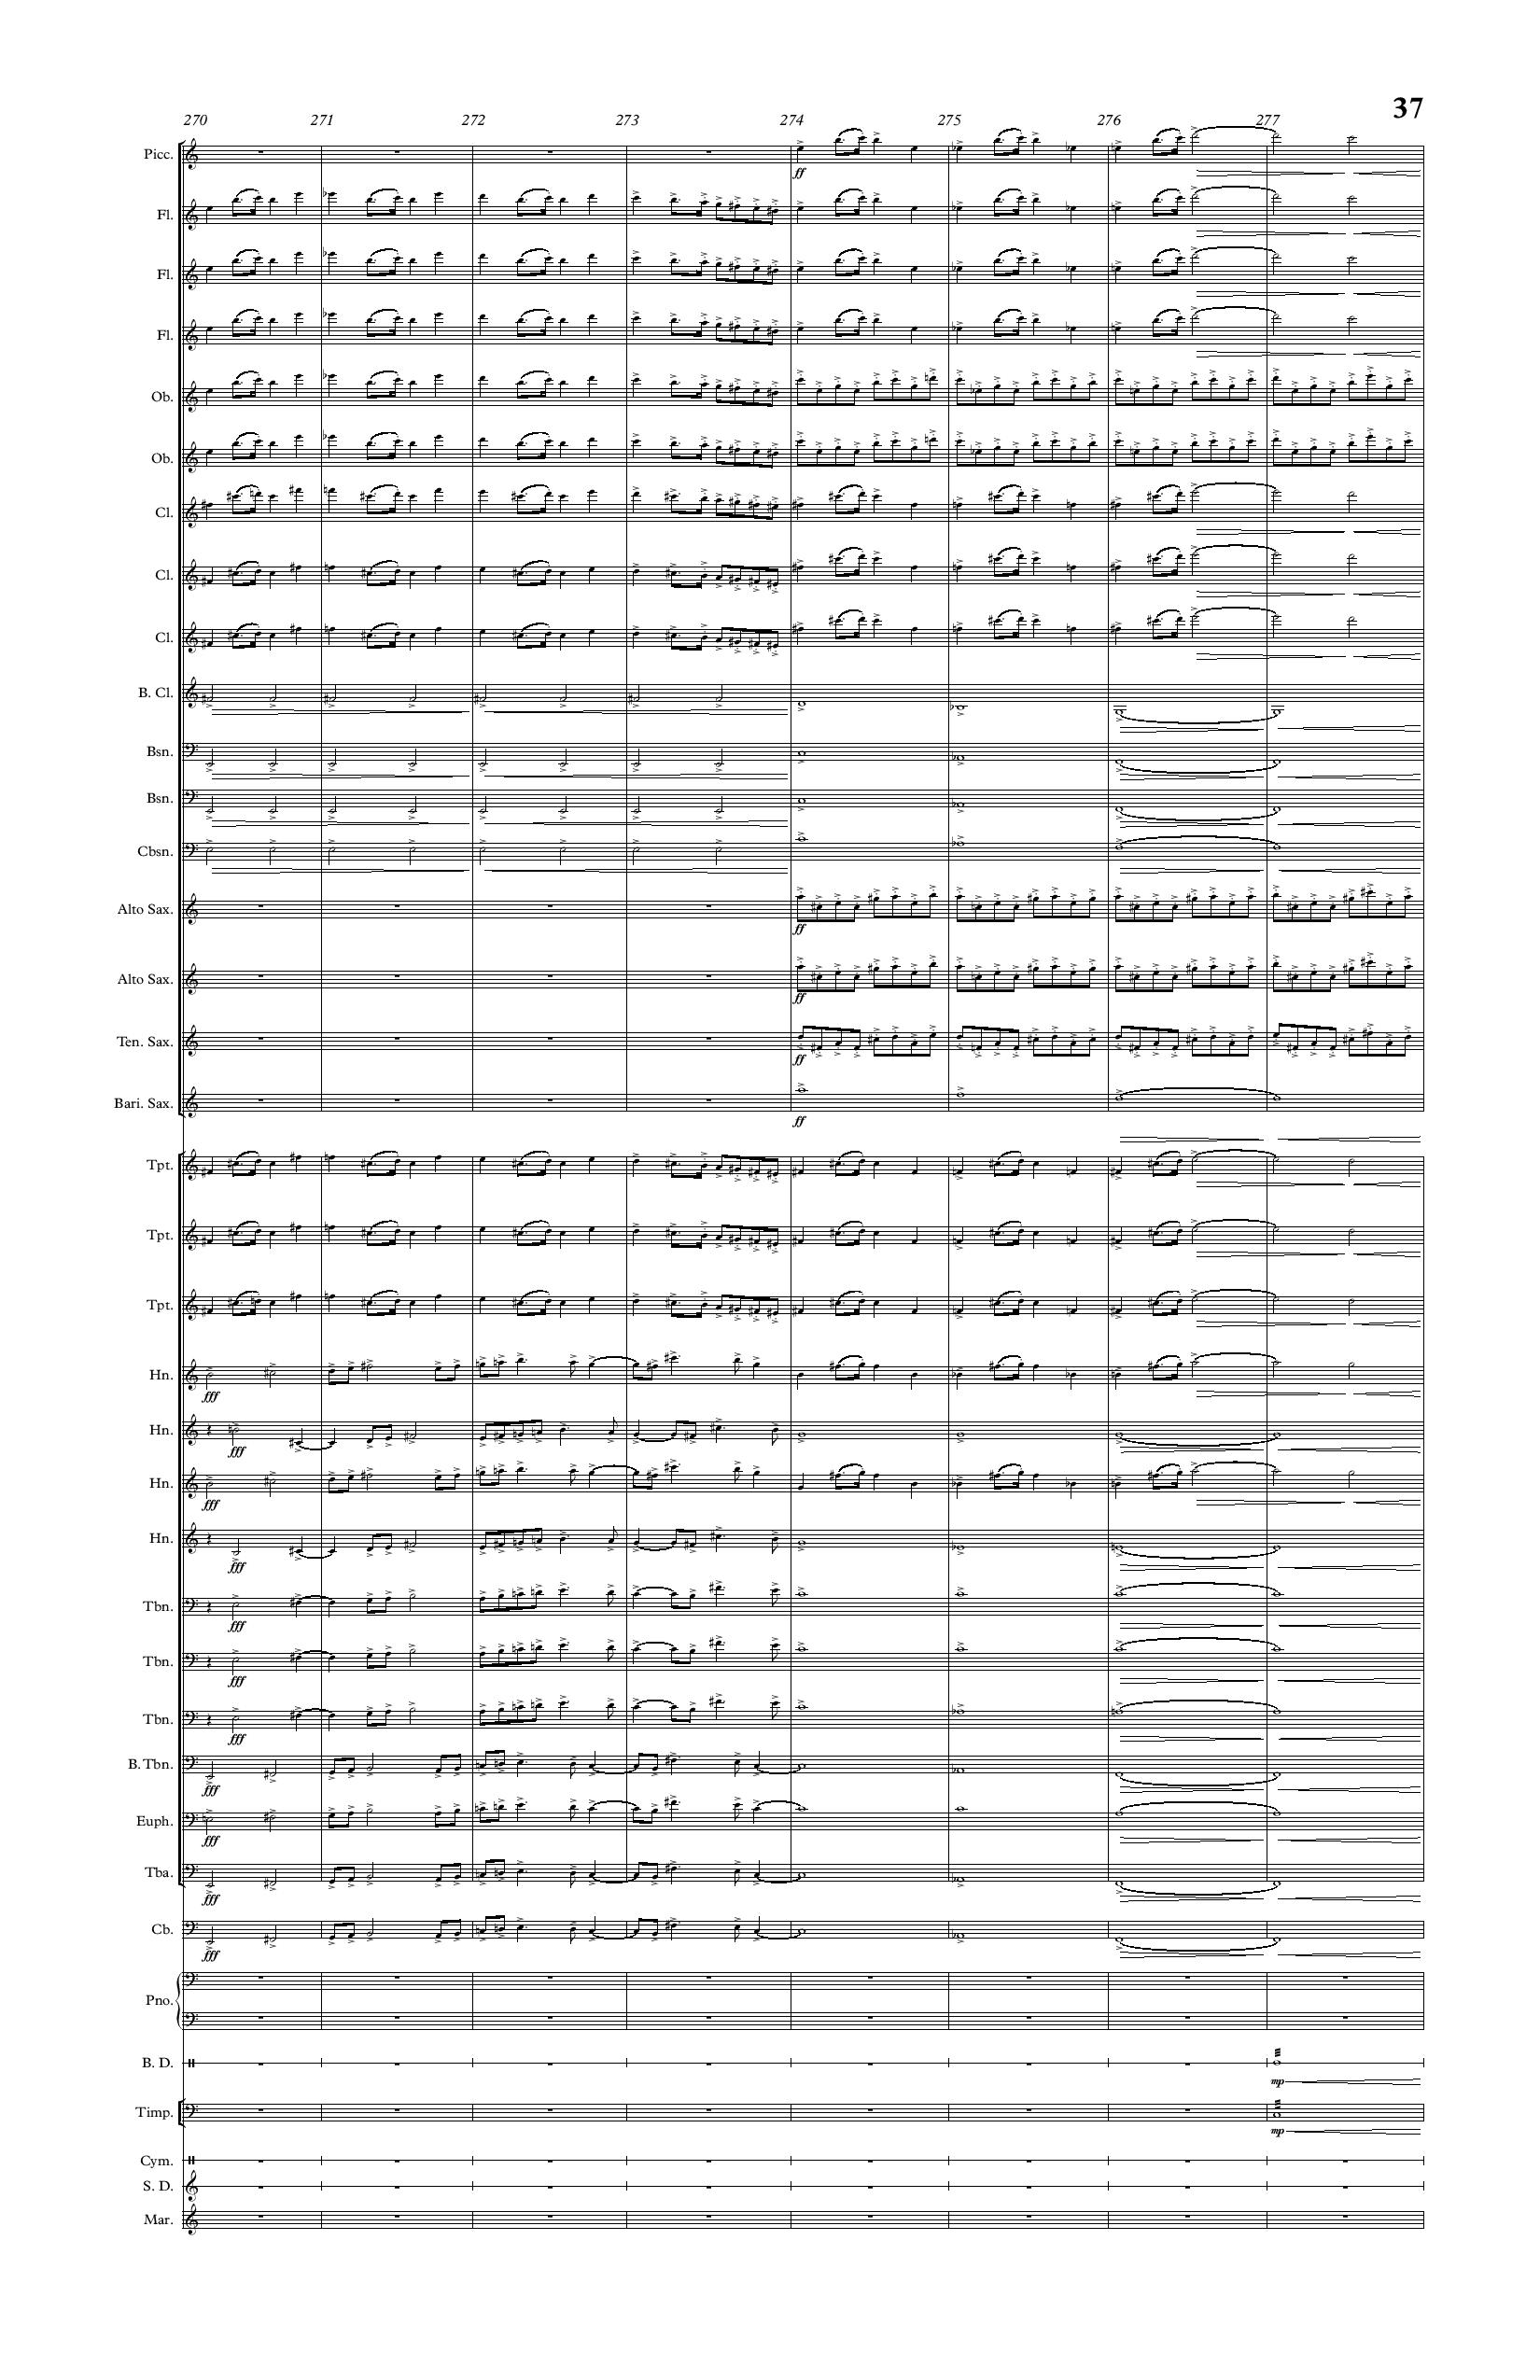 Rupture Full Transposed Score - Full Score (1)-page-037